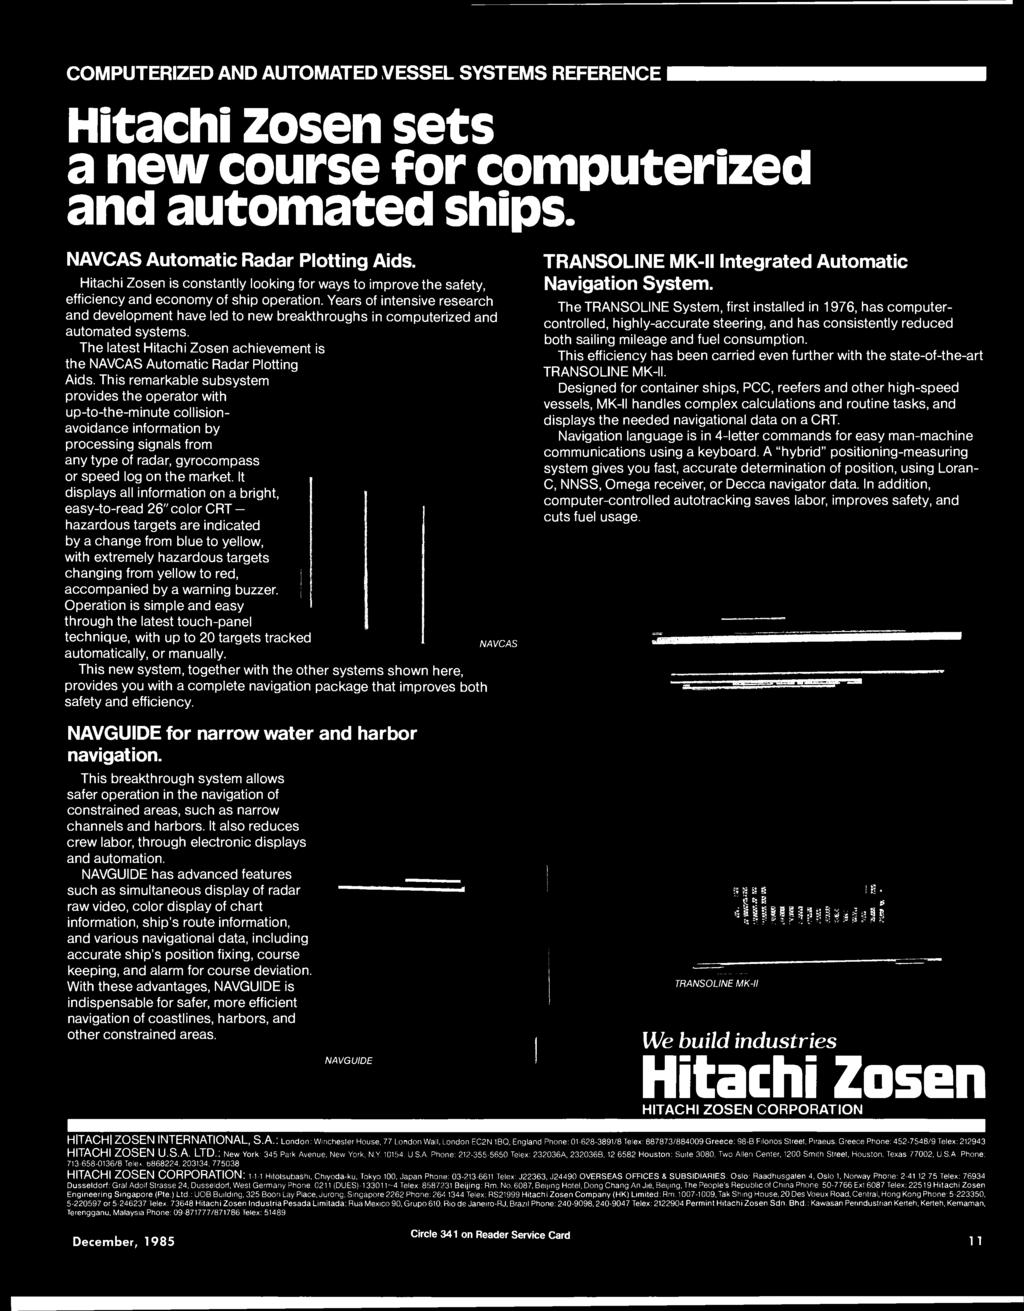 Maritime Reporter Engineering News Fflllbble Ib M1 M December 1985 Hitachi Alternator Wiring Diagram Share The Knownledge Computerized And Automated Vessel Systems Reference Zosen Sets A New Course For